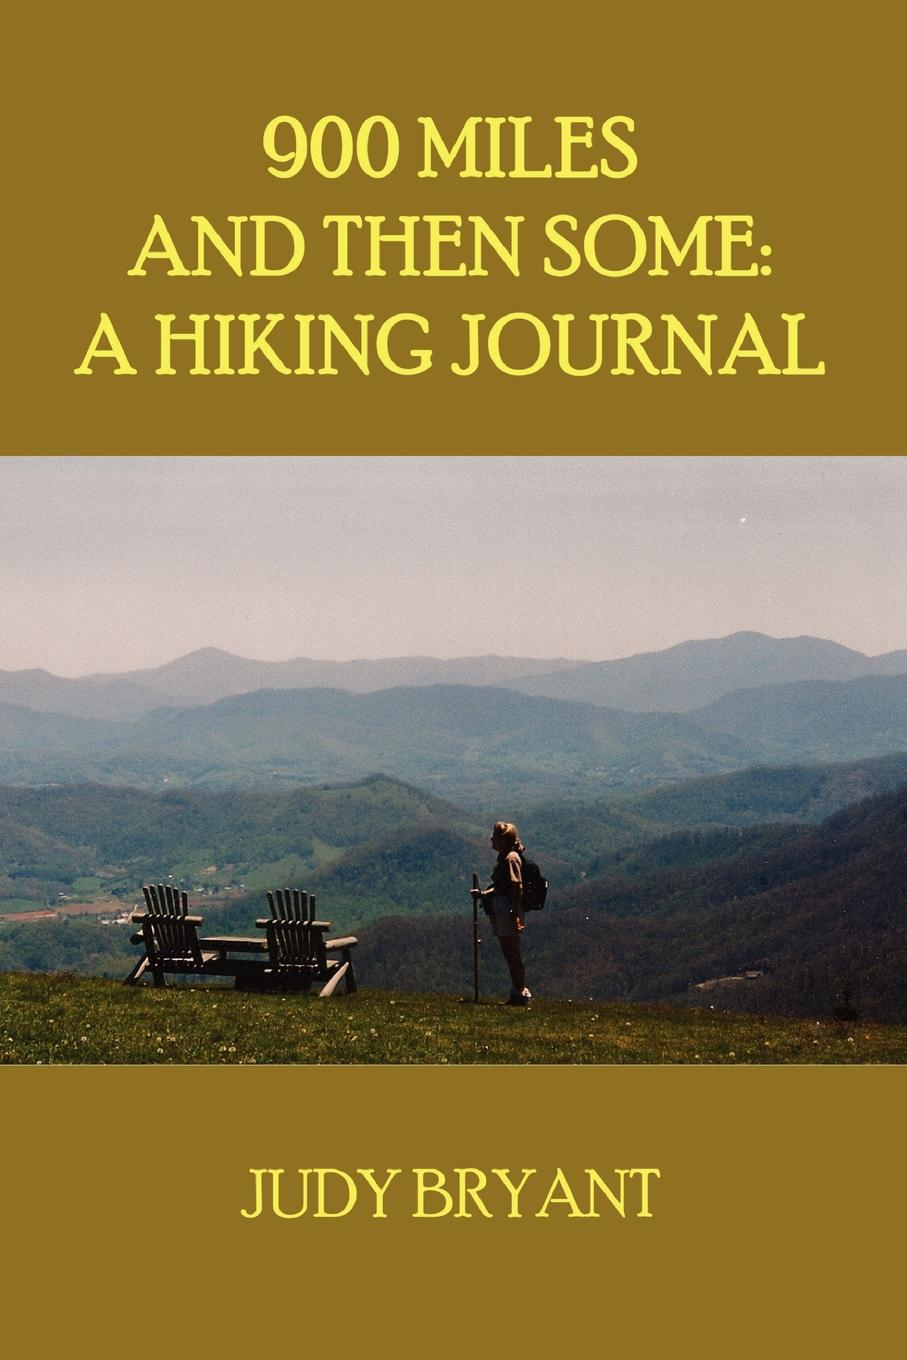 Judy Bryant 900 Miles and Then Some. A Hiking Journal